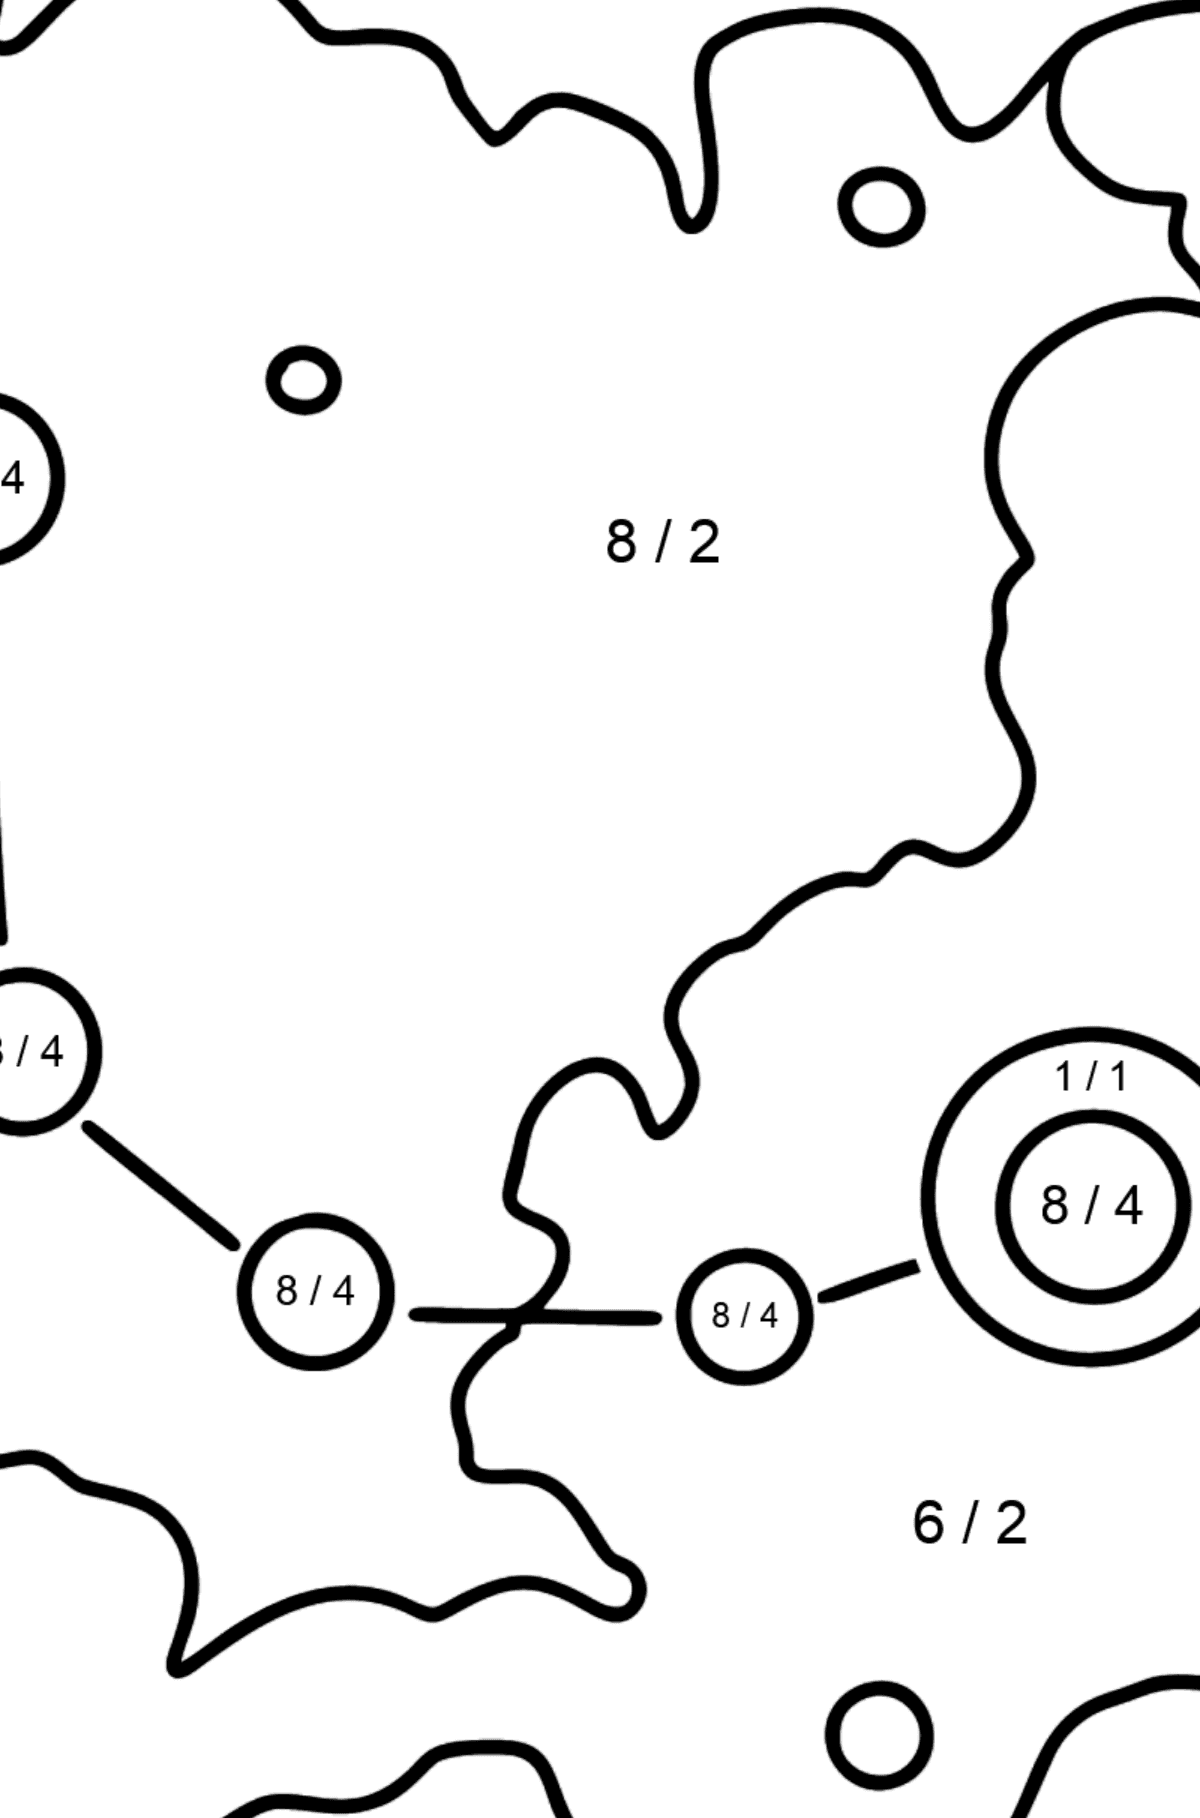 Constellation coloring page - Math Coloring - Division for Kids